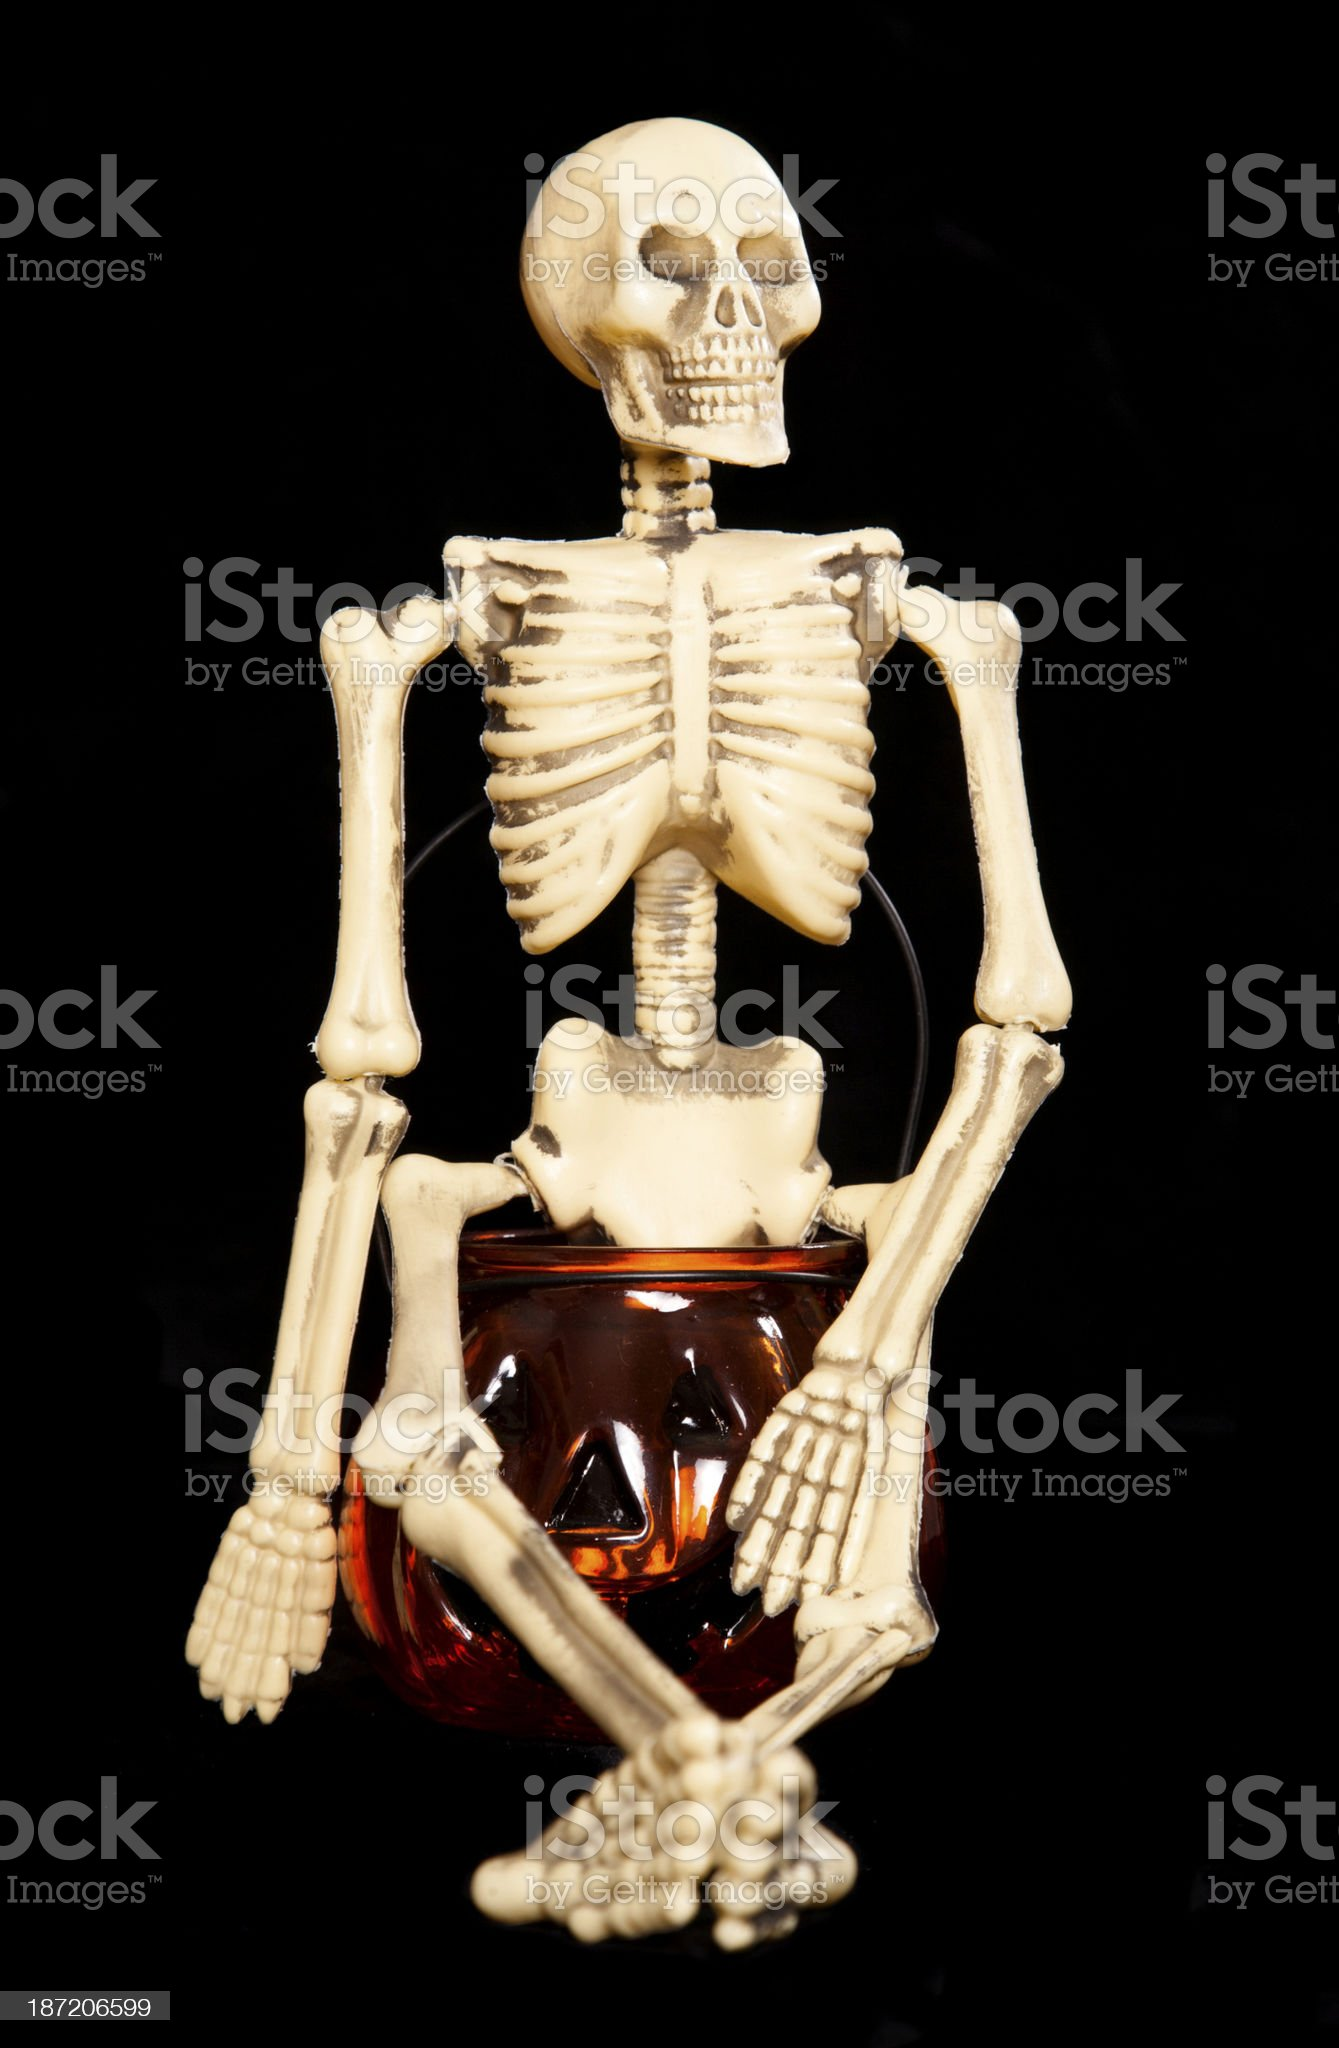 Skeleton sitting on a pumpkin jar royalty-free stock photo